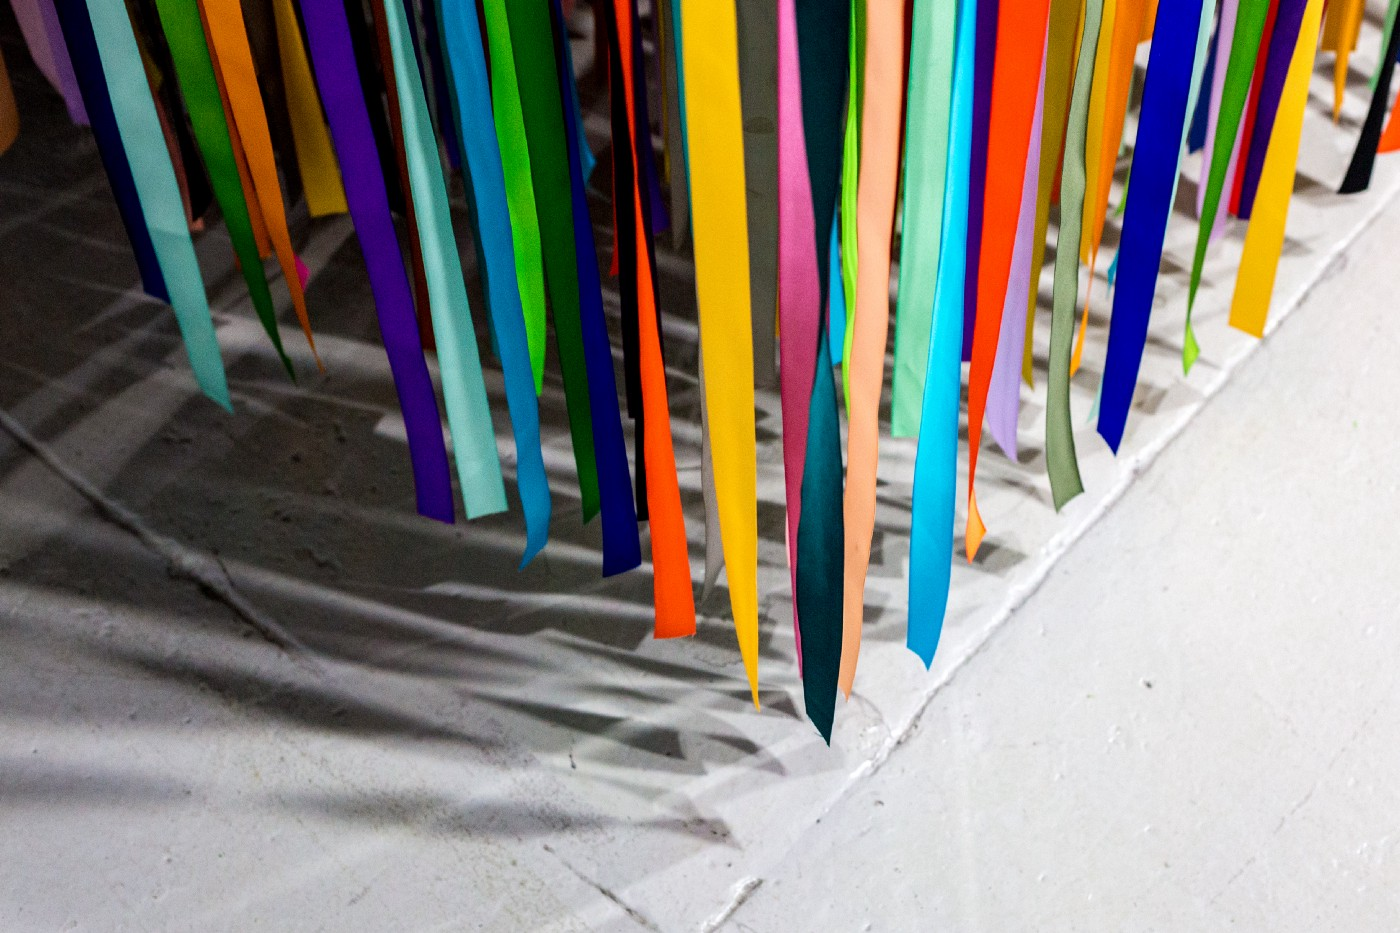 multi-colored ribbons hanging over a grey floor